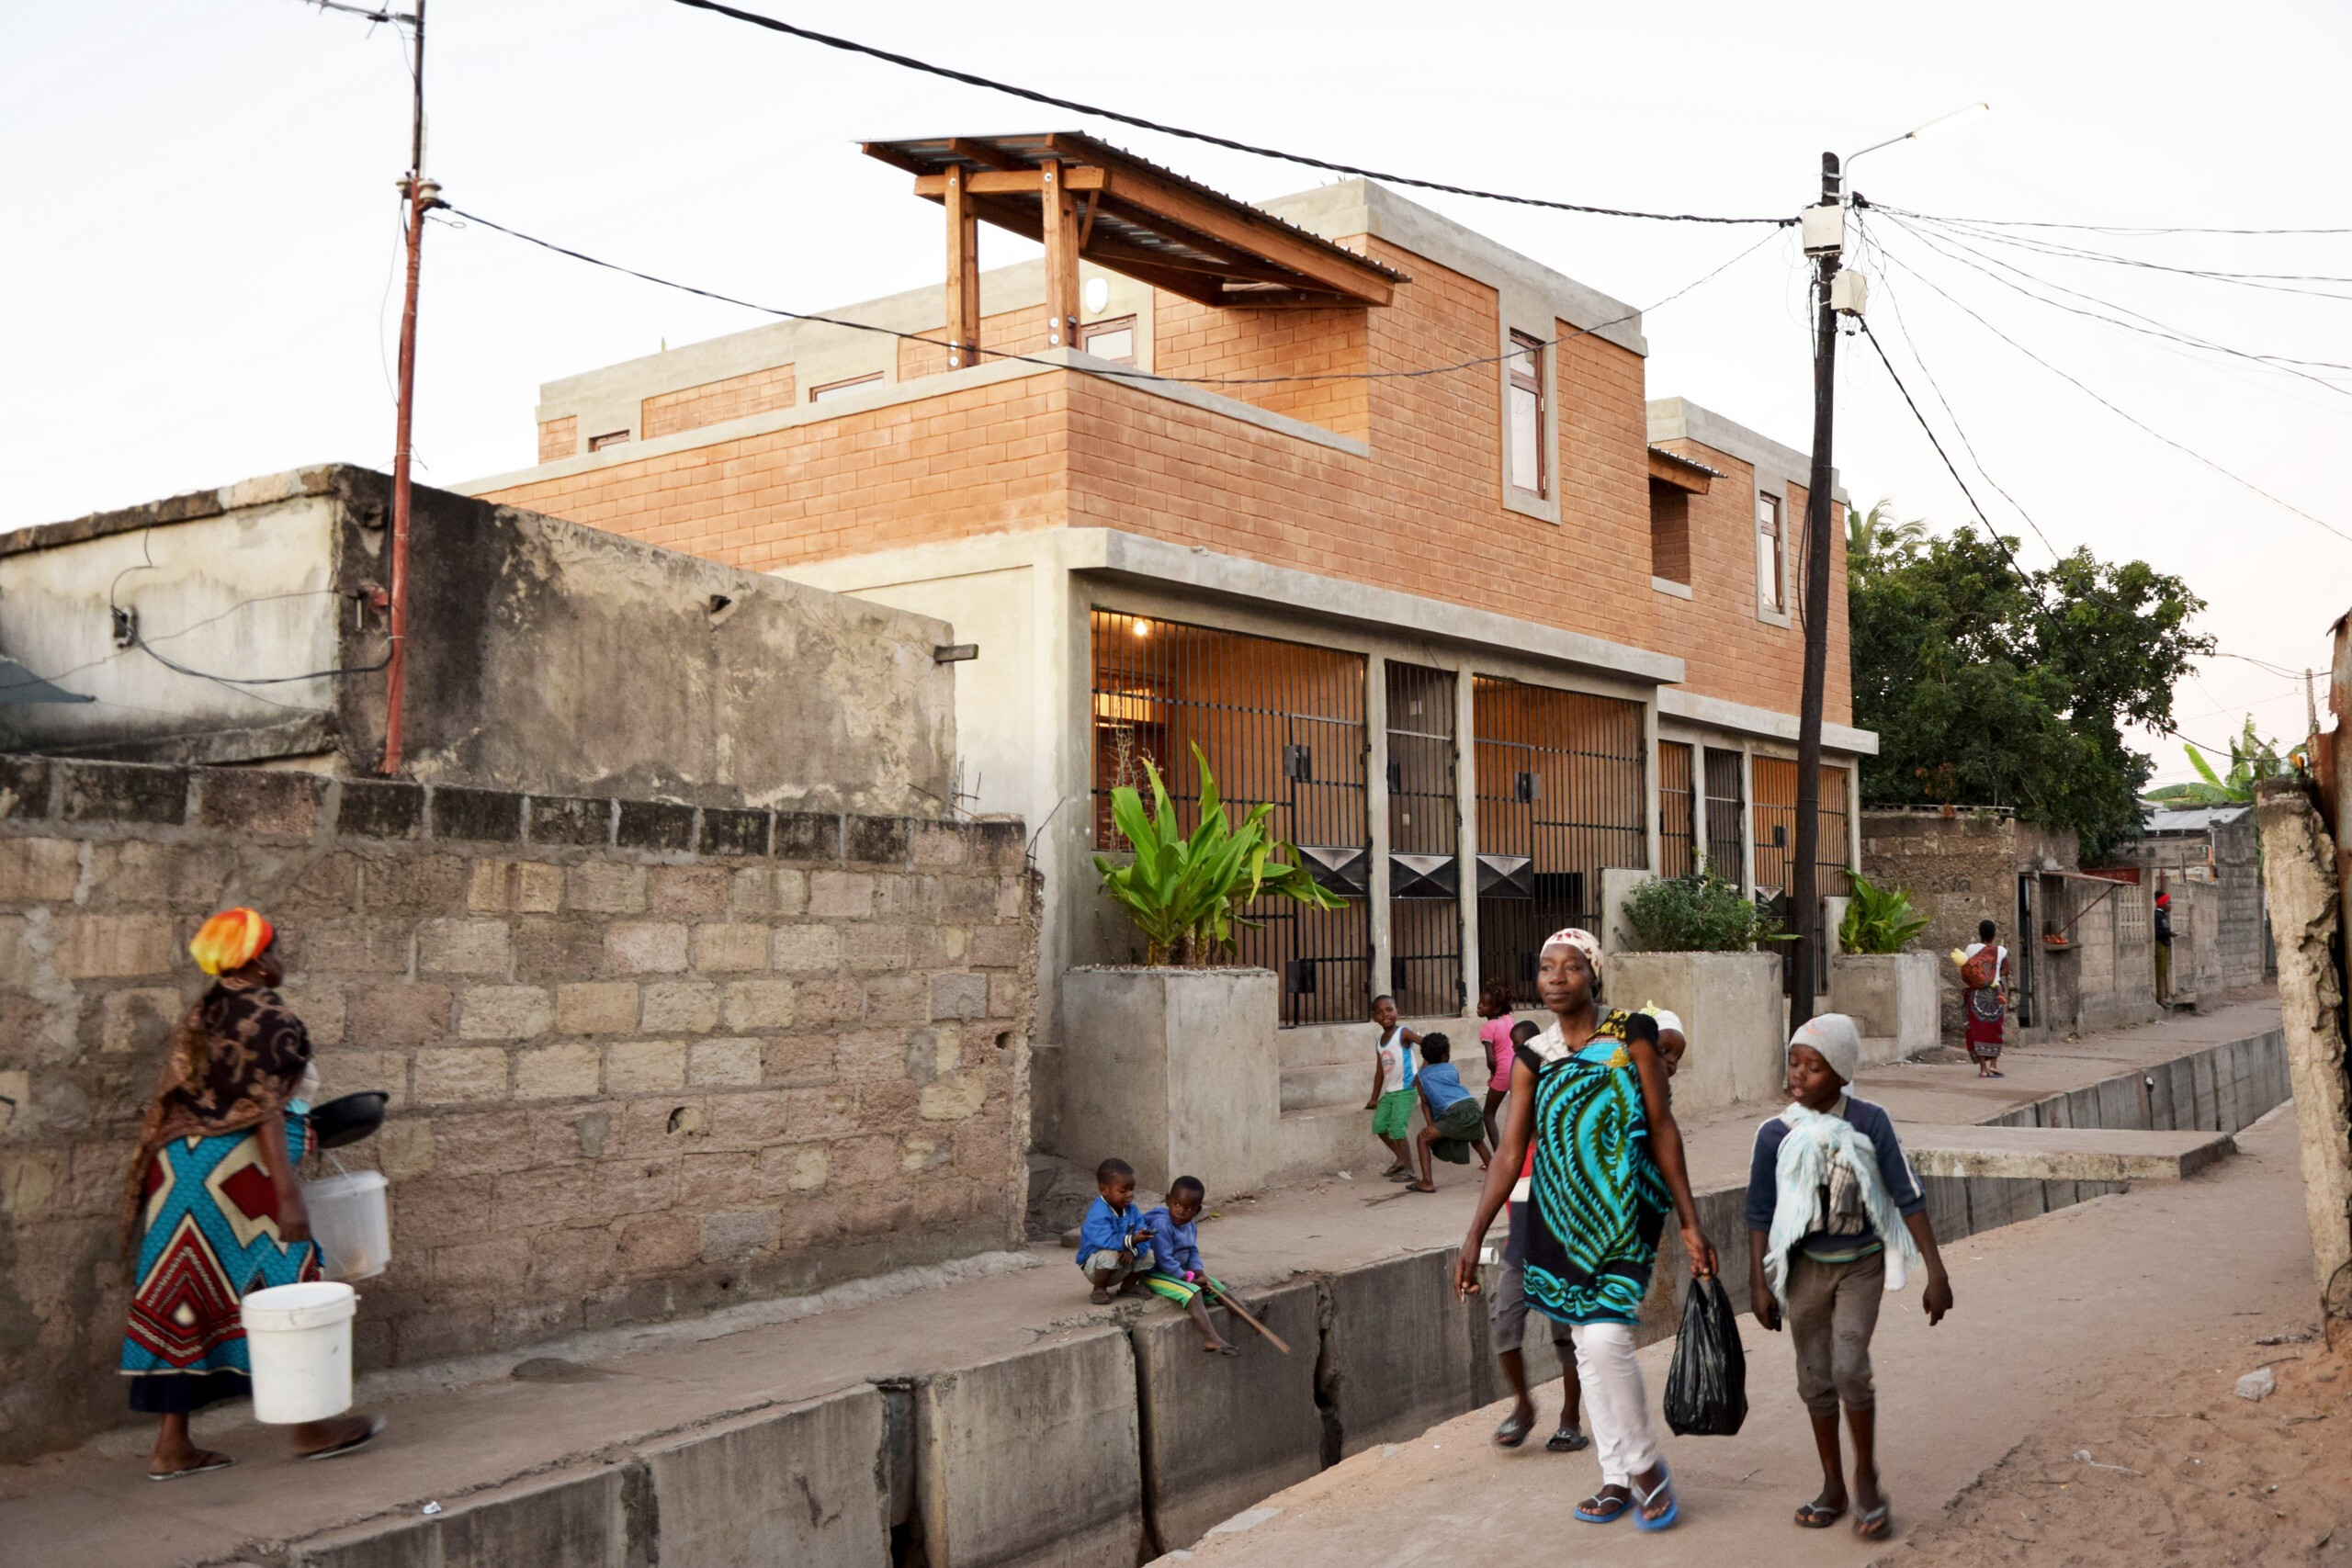 Affordable Housing in Maputo, Mozambique